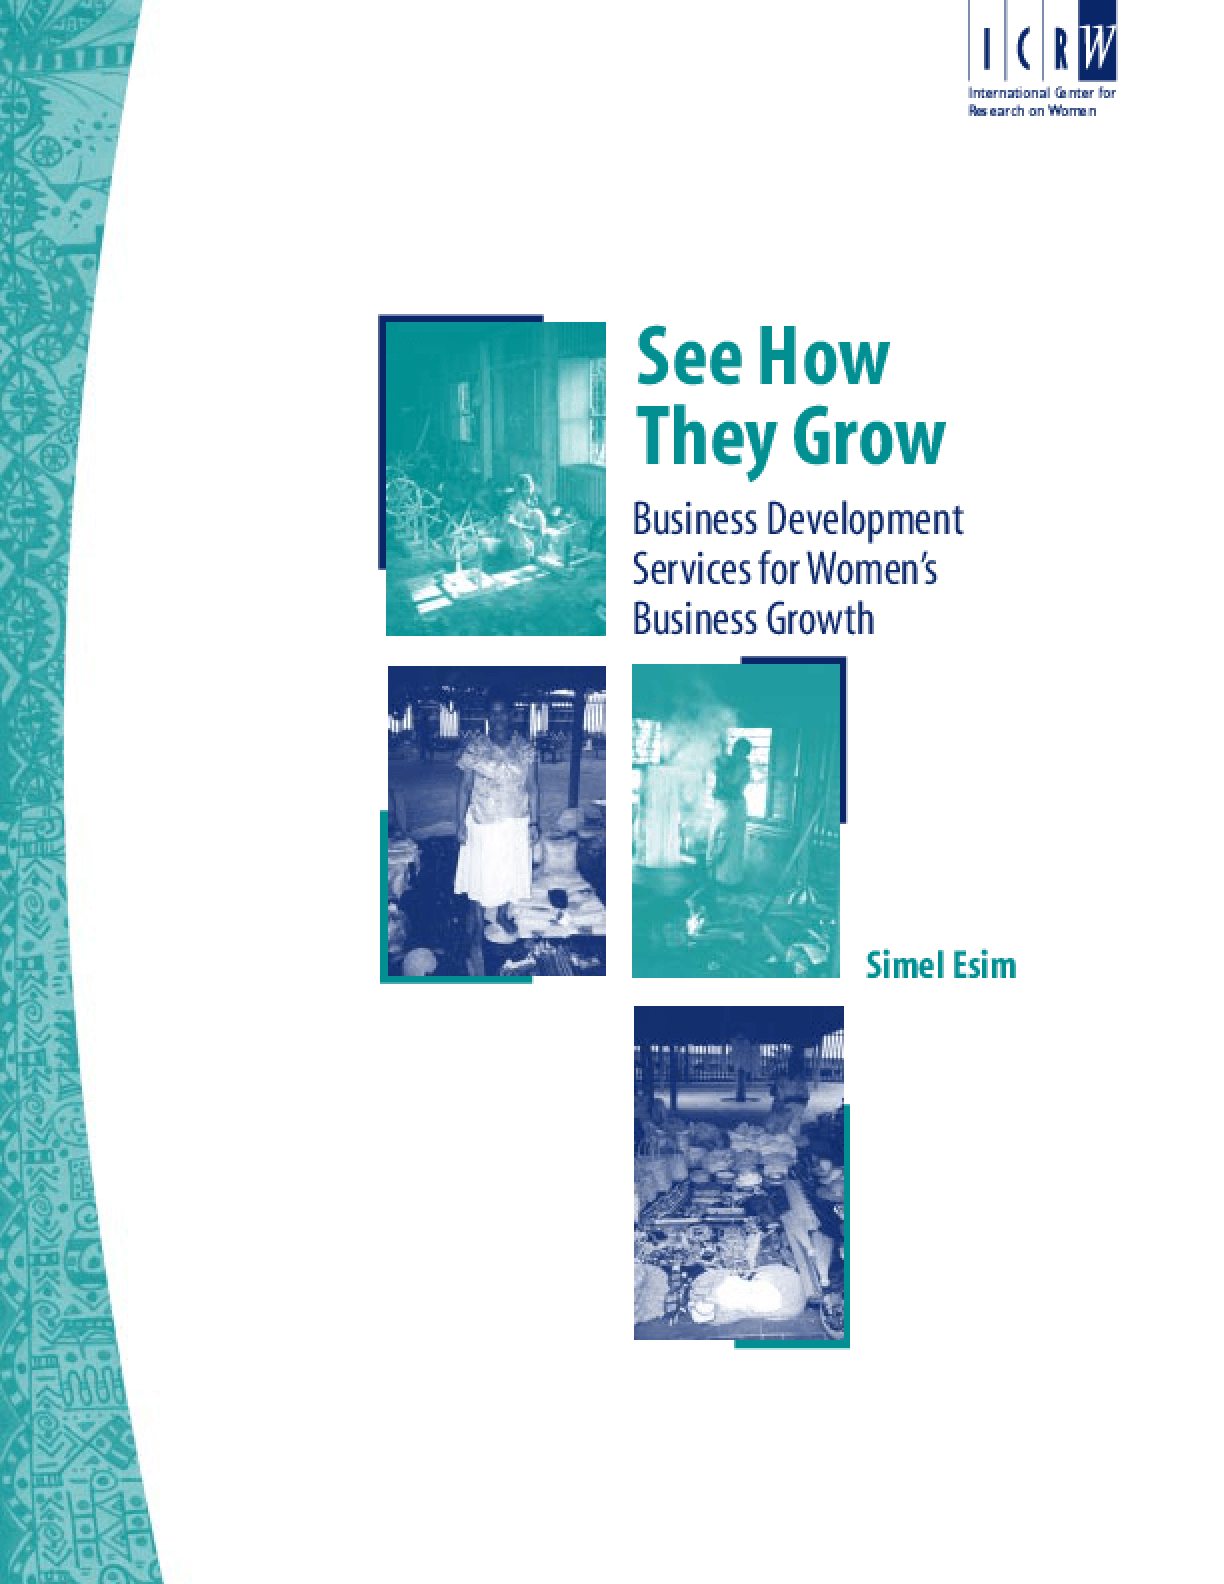 See How They Grow: Business Development Services for Women's Business Growth